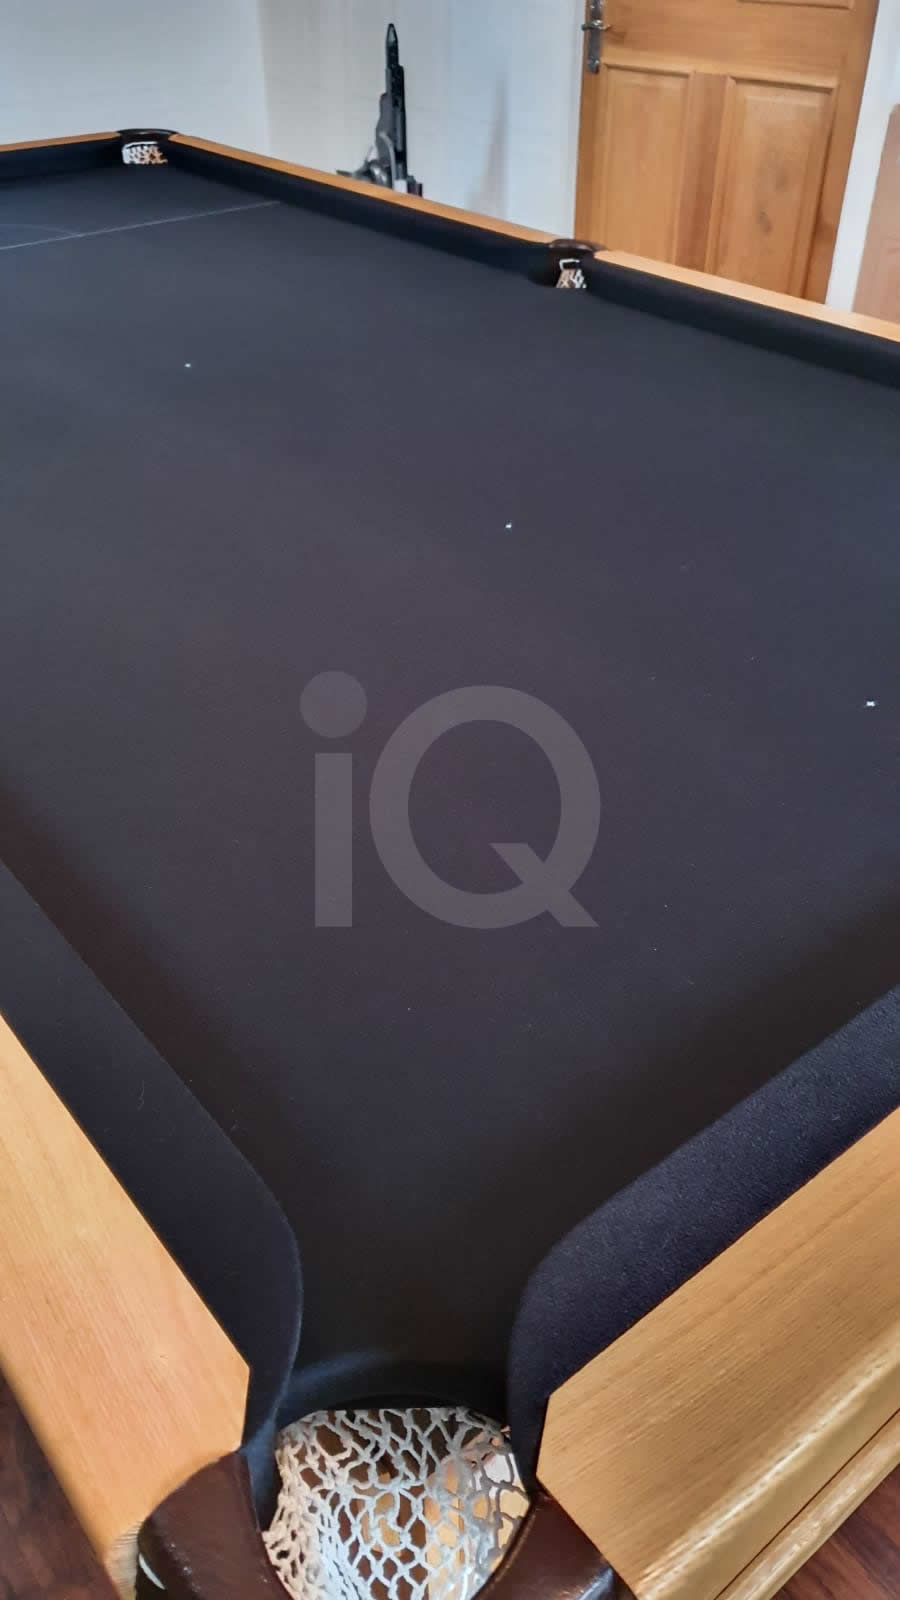 Recover of a 8ft Strachan 6811 Snooker Table with Black Cloth After Image 5